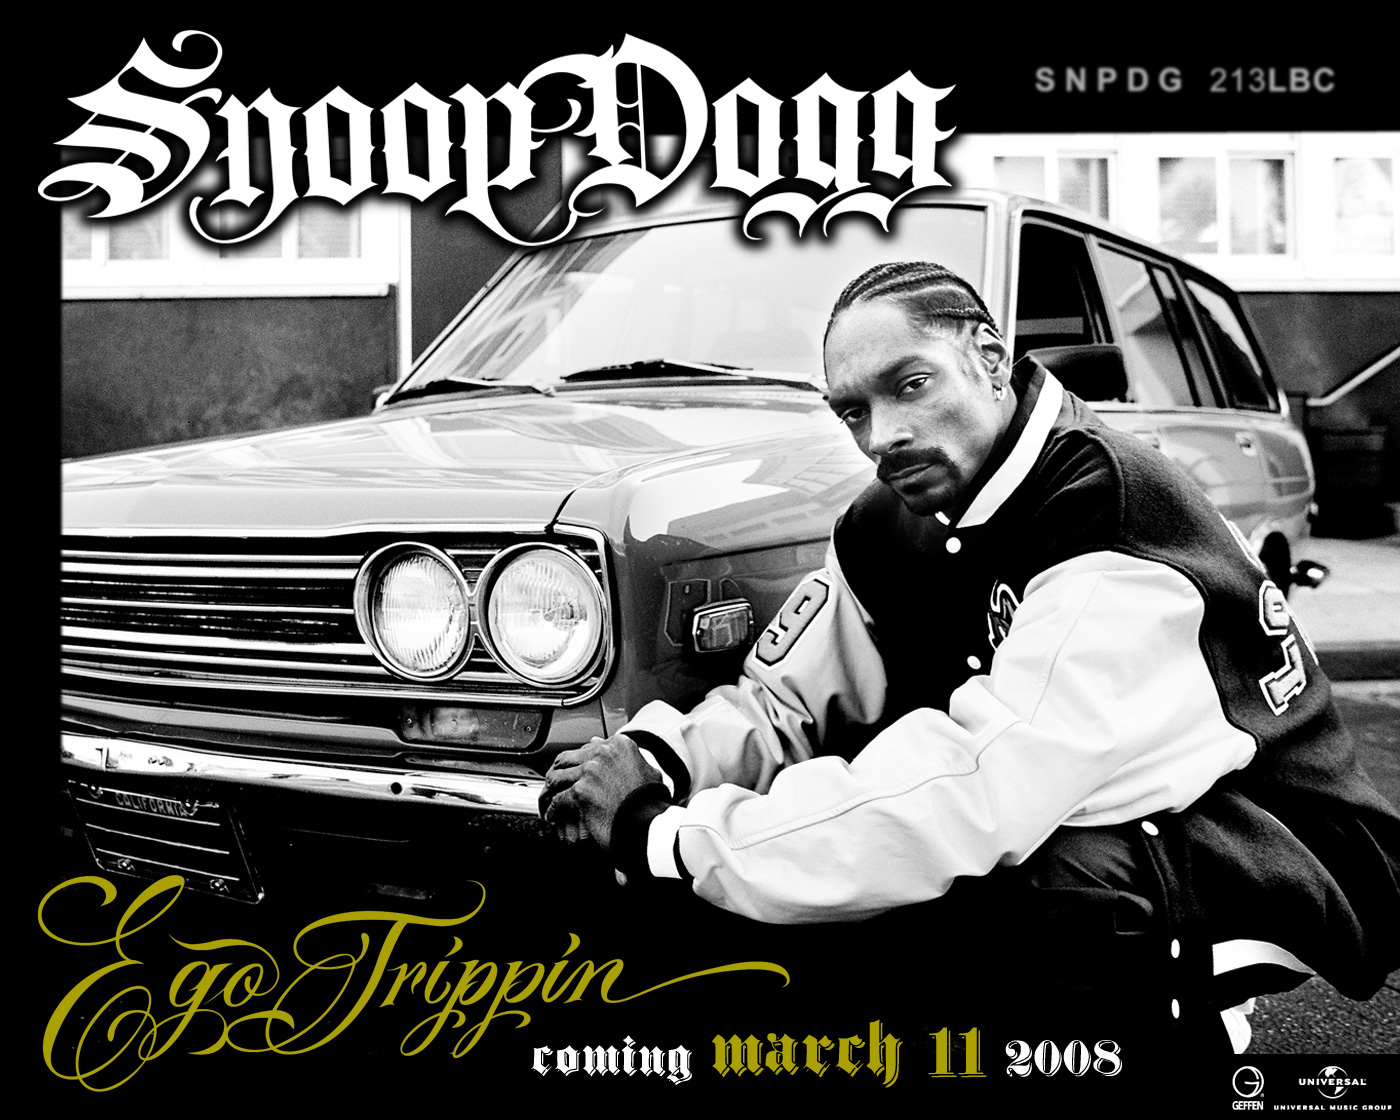 Rap-Wallpapers.com » Snoop Dogg Wallpapers » Hip Hop & Rap Music Wallpapers